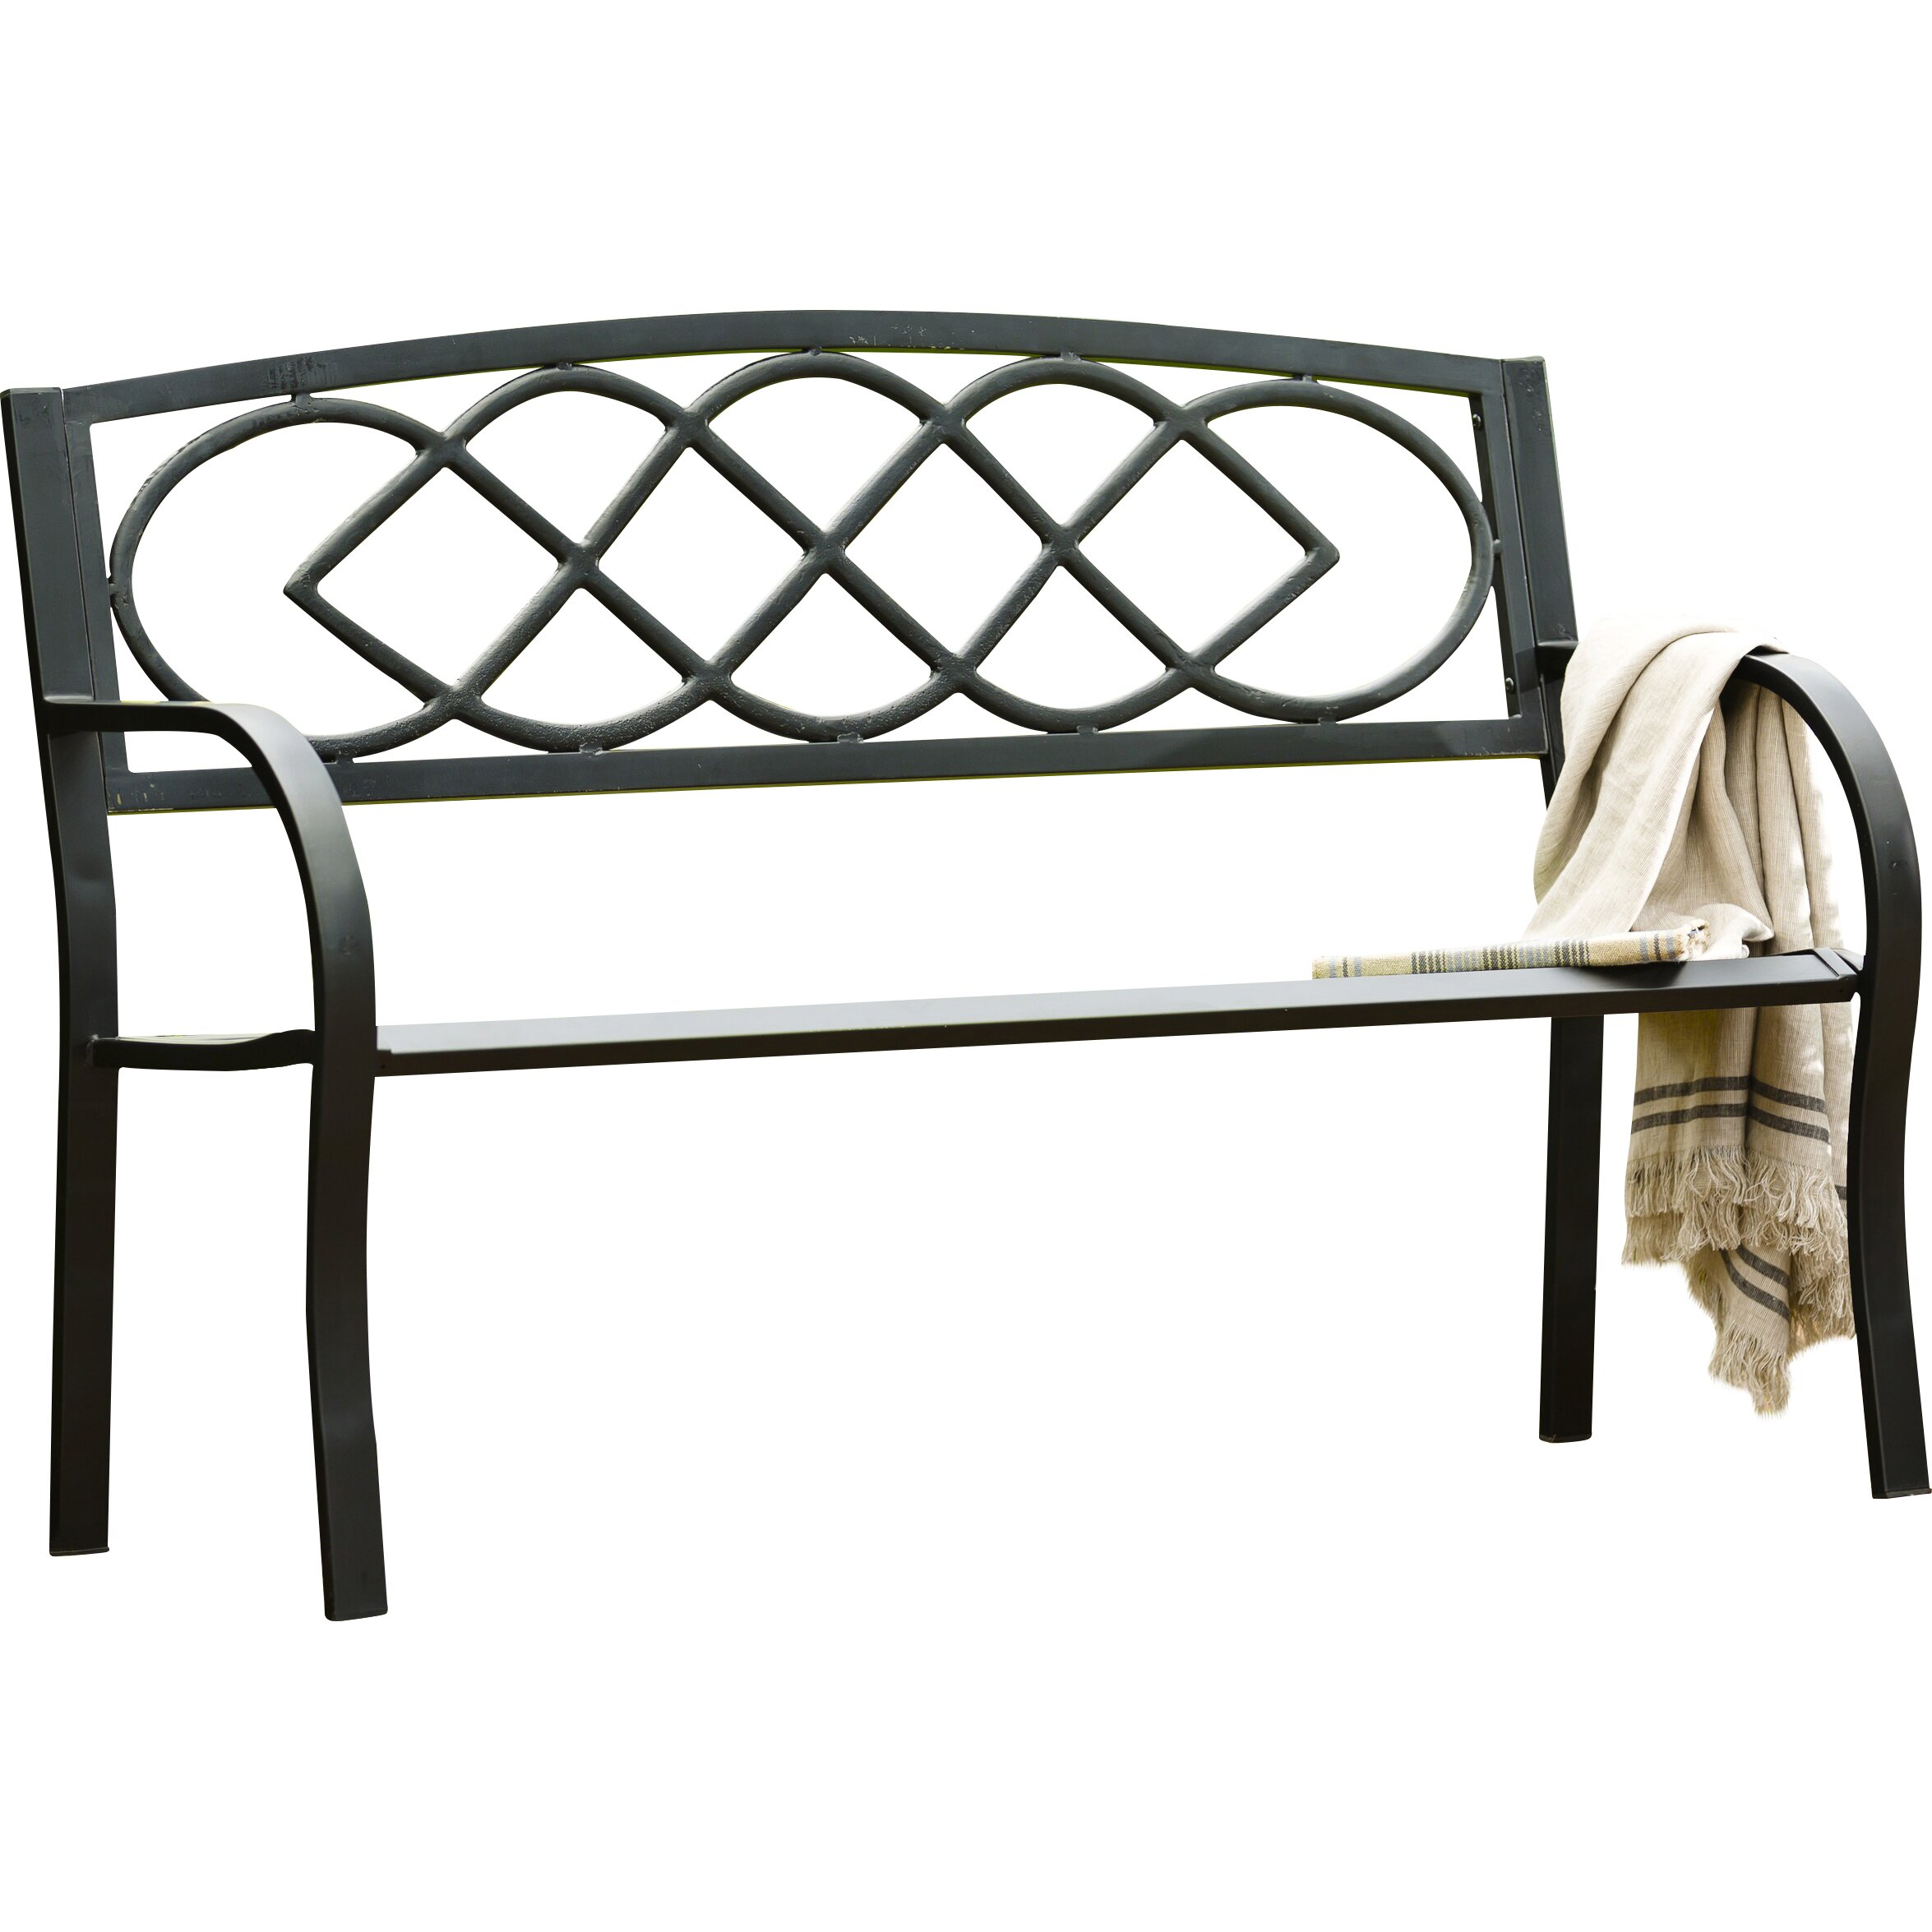 Plow And Hearth Furniture: Plow & Hearth Celtic Knot Iron Garden Bench & Reviews